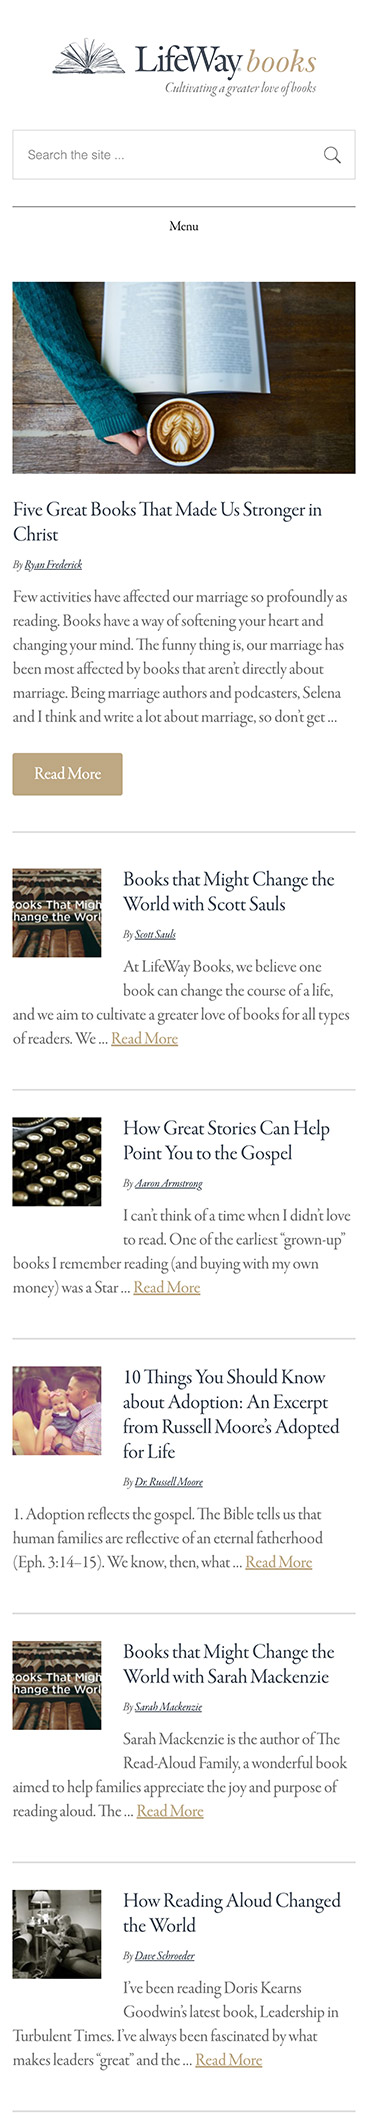 LifeWay Books Mobile Version